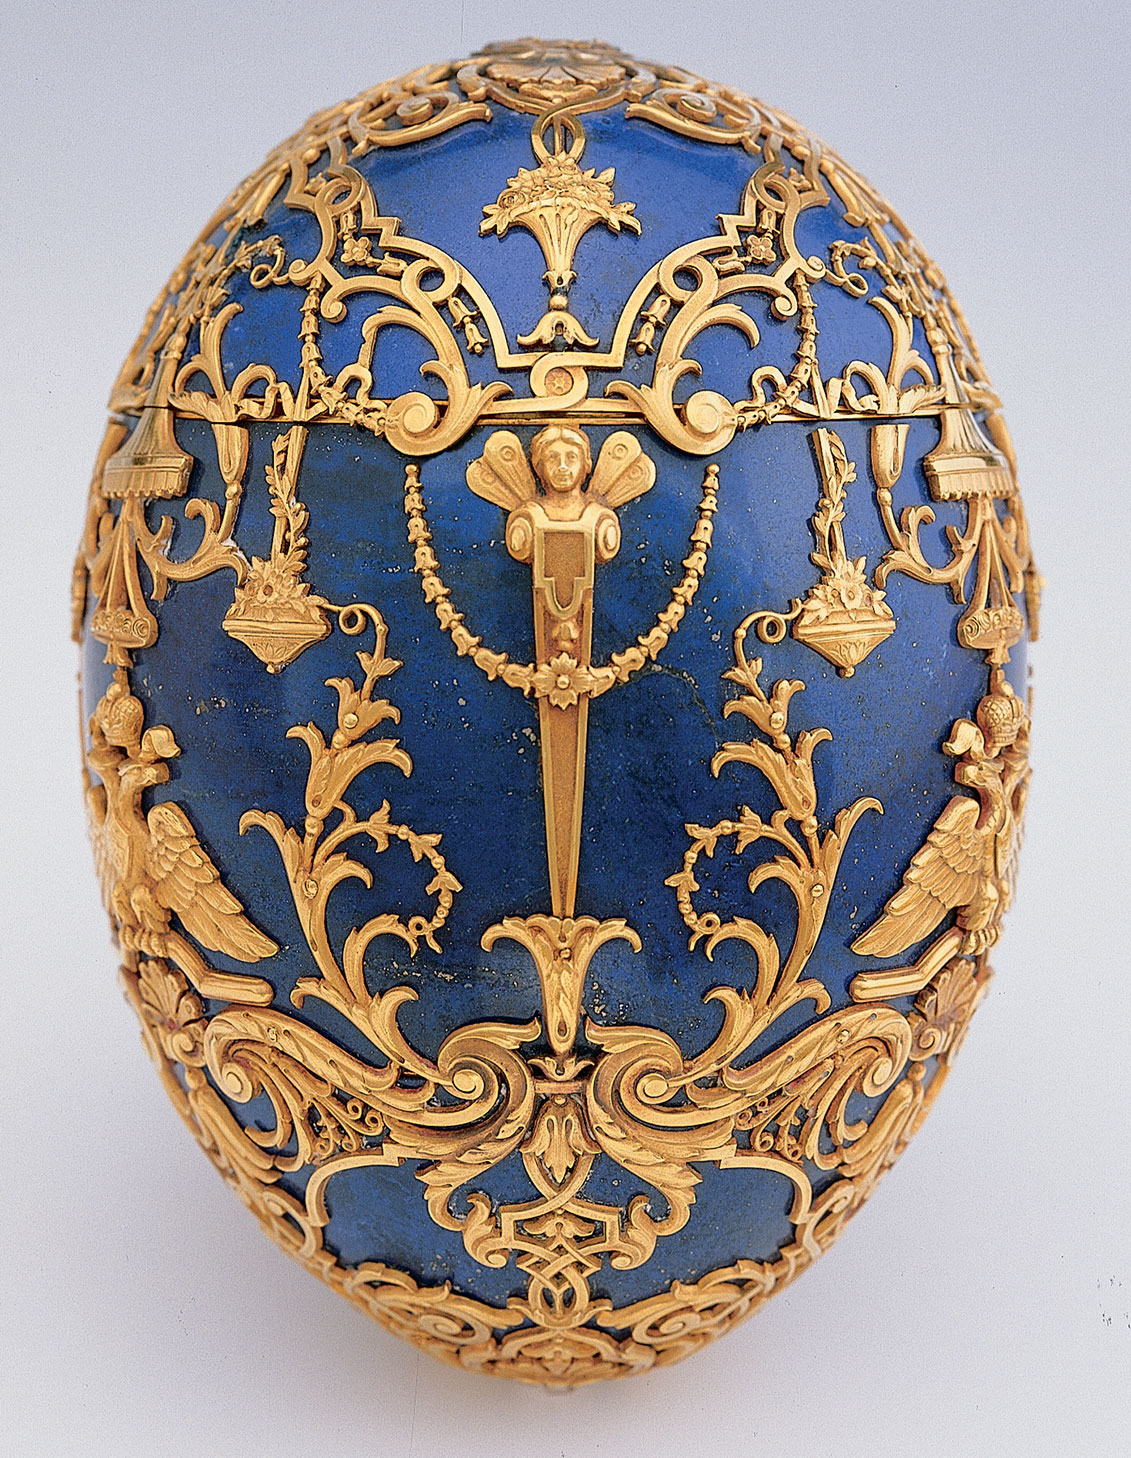 Faberge, Faberge Egg, House of Faberge, Fabergé, Faberge ...